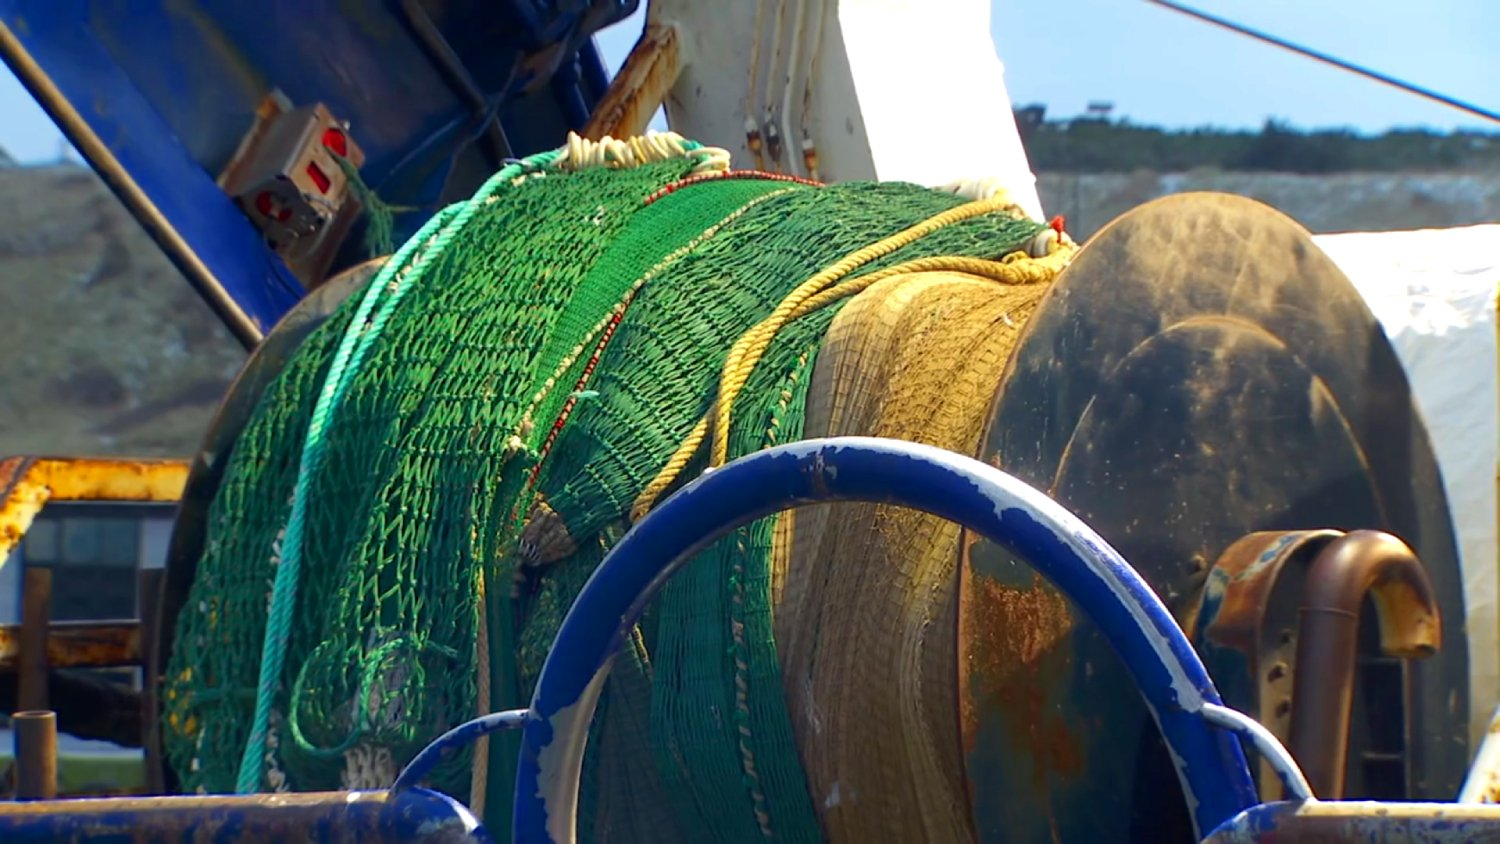 A study challenges the fishing industry's contention that trawling has a low carbon footprint